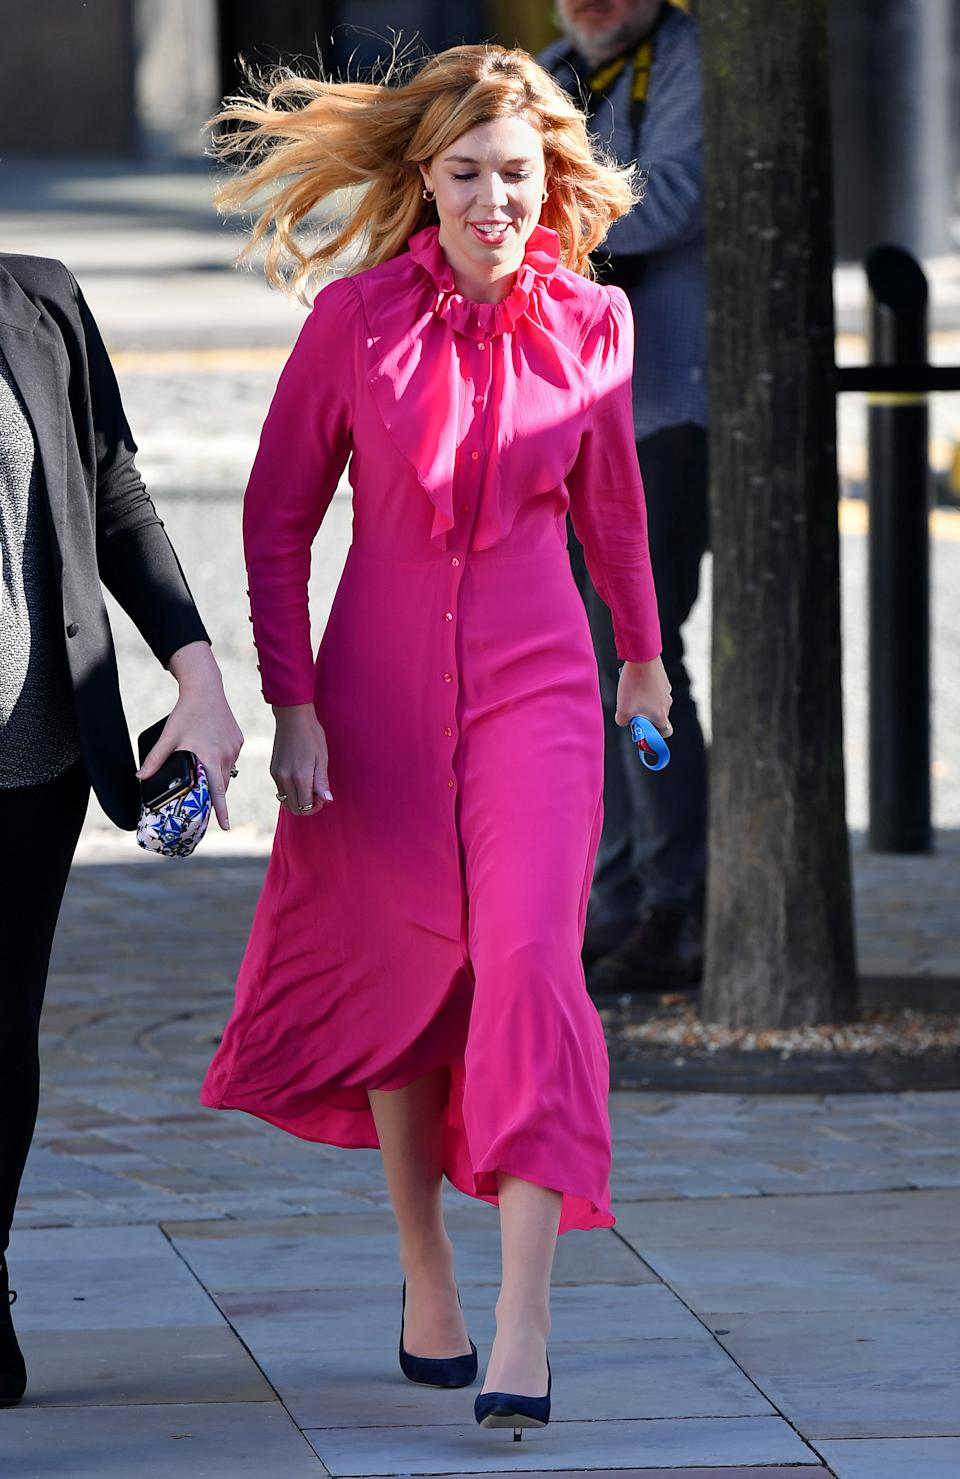 Carrie Symonds stood out from the crowd in a bright fuchsia £85 dress from & Other Stories on day four of the Conservative Party Conference in Manchester [Photo: Getty Images